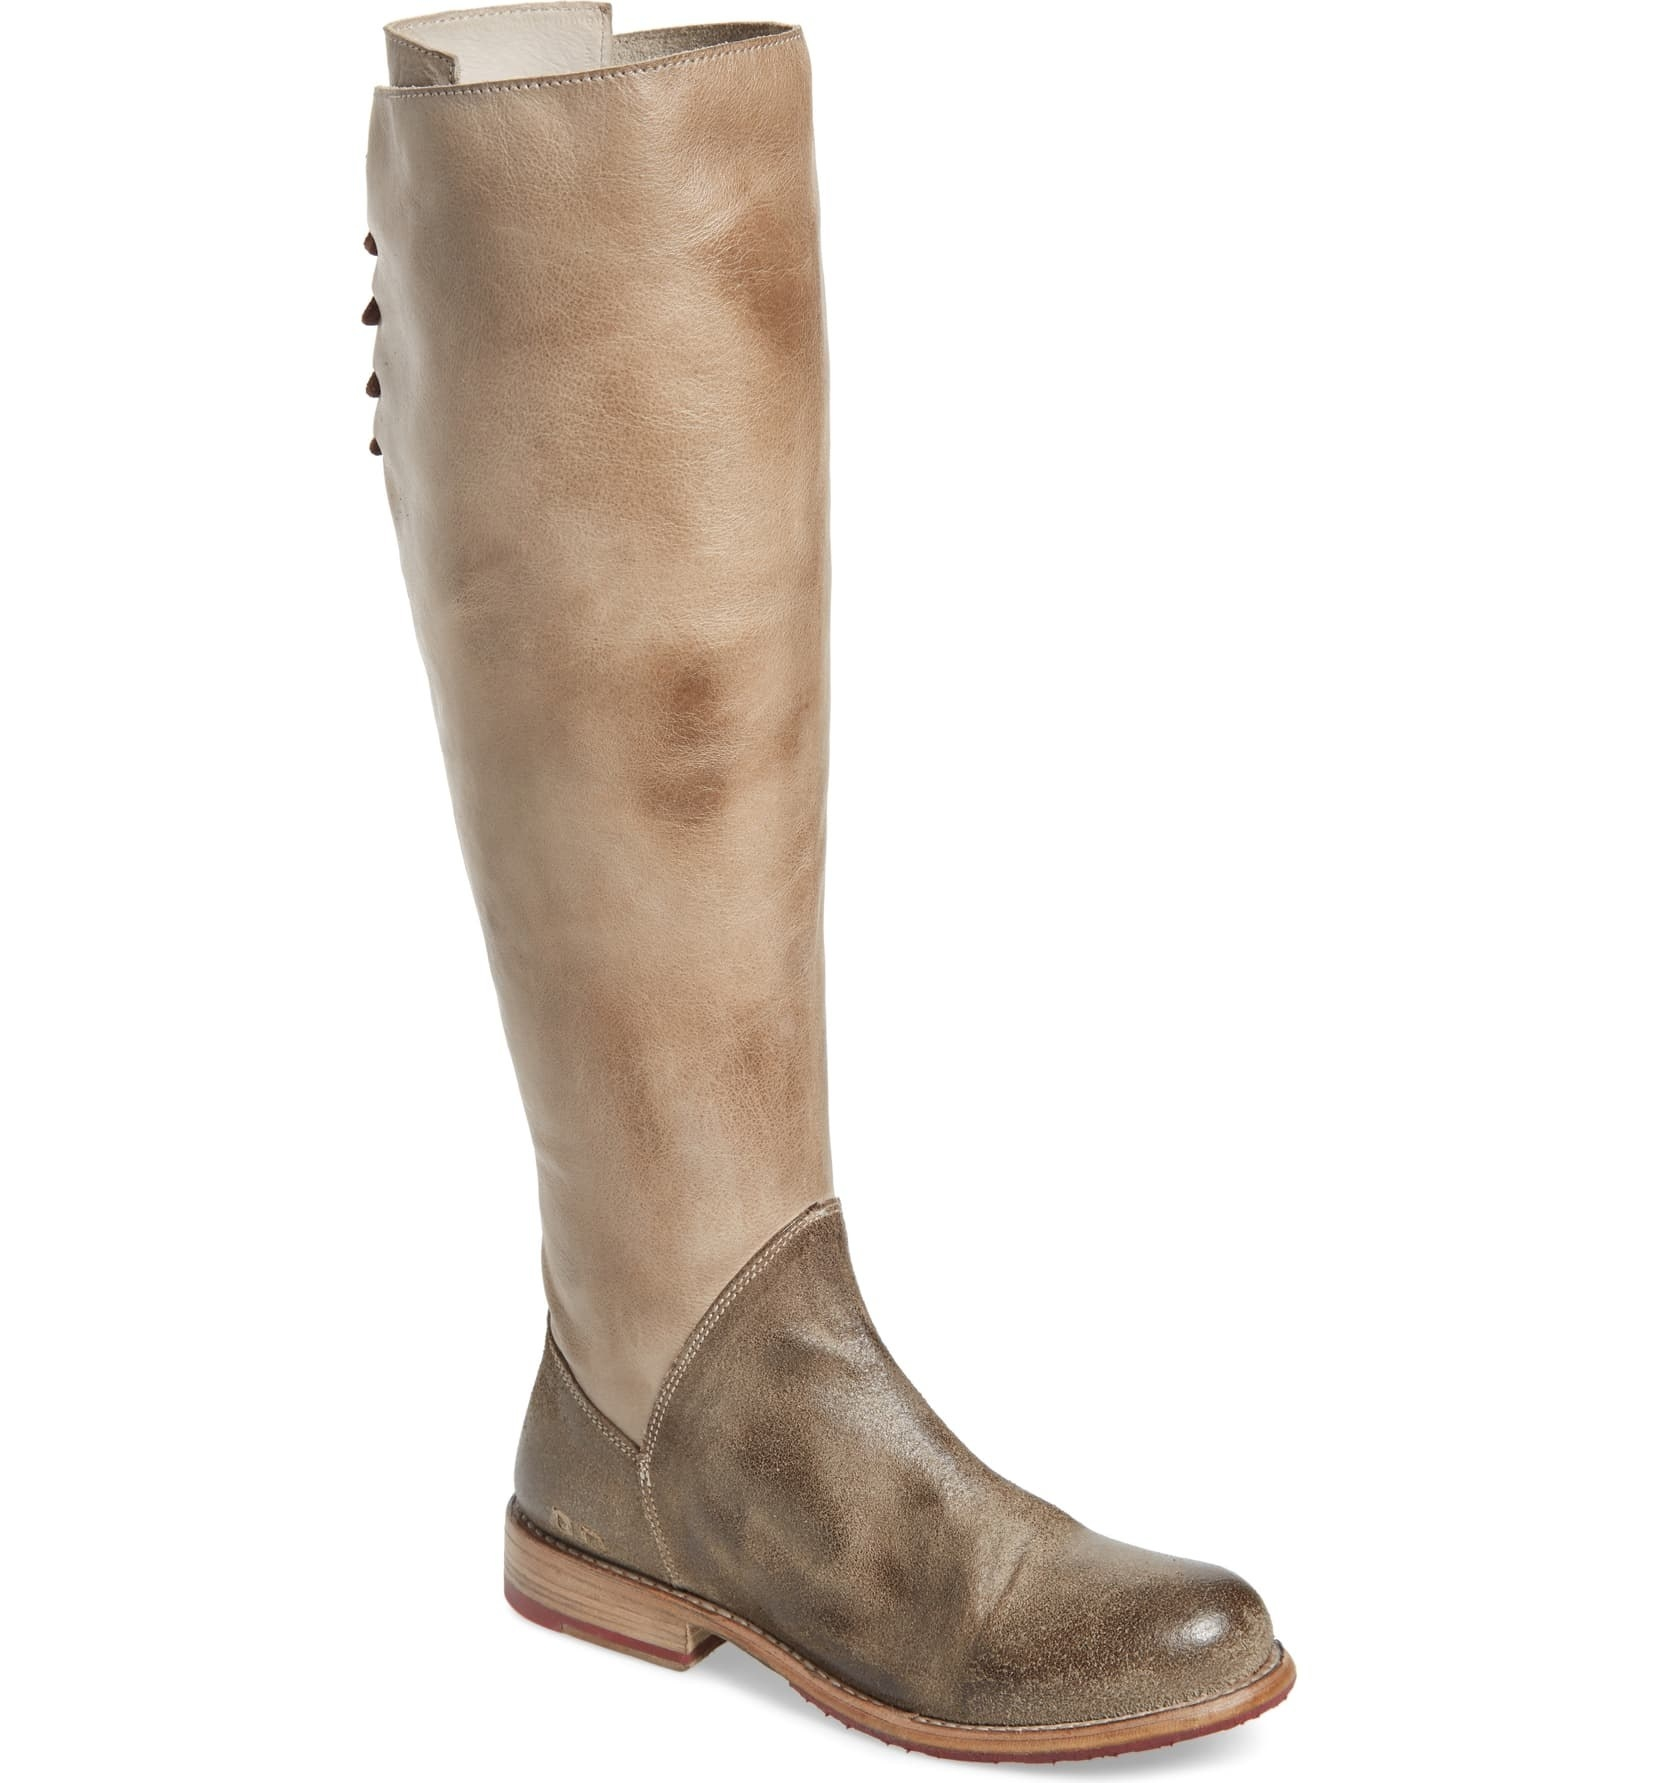 The tall boot in the taupe color, and the bottom part of the boot by the foot is a darker brown color